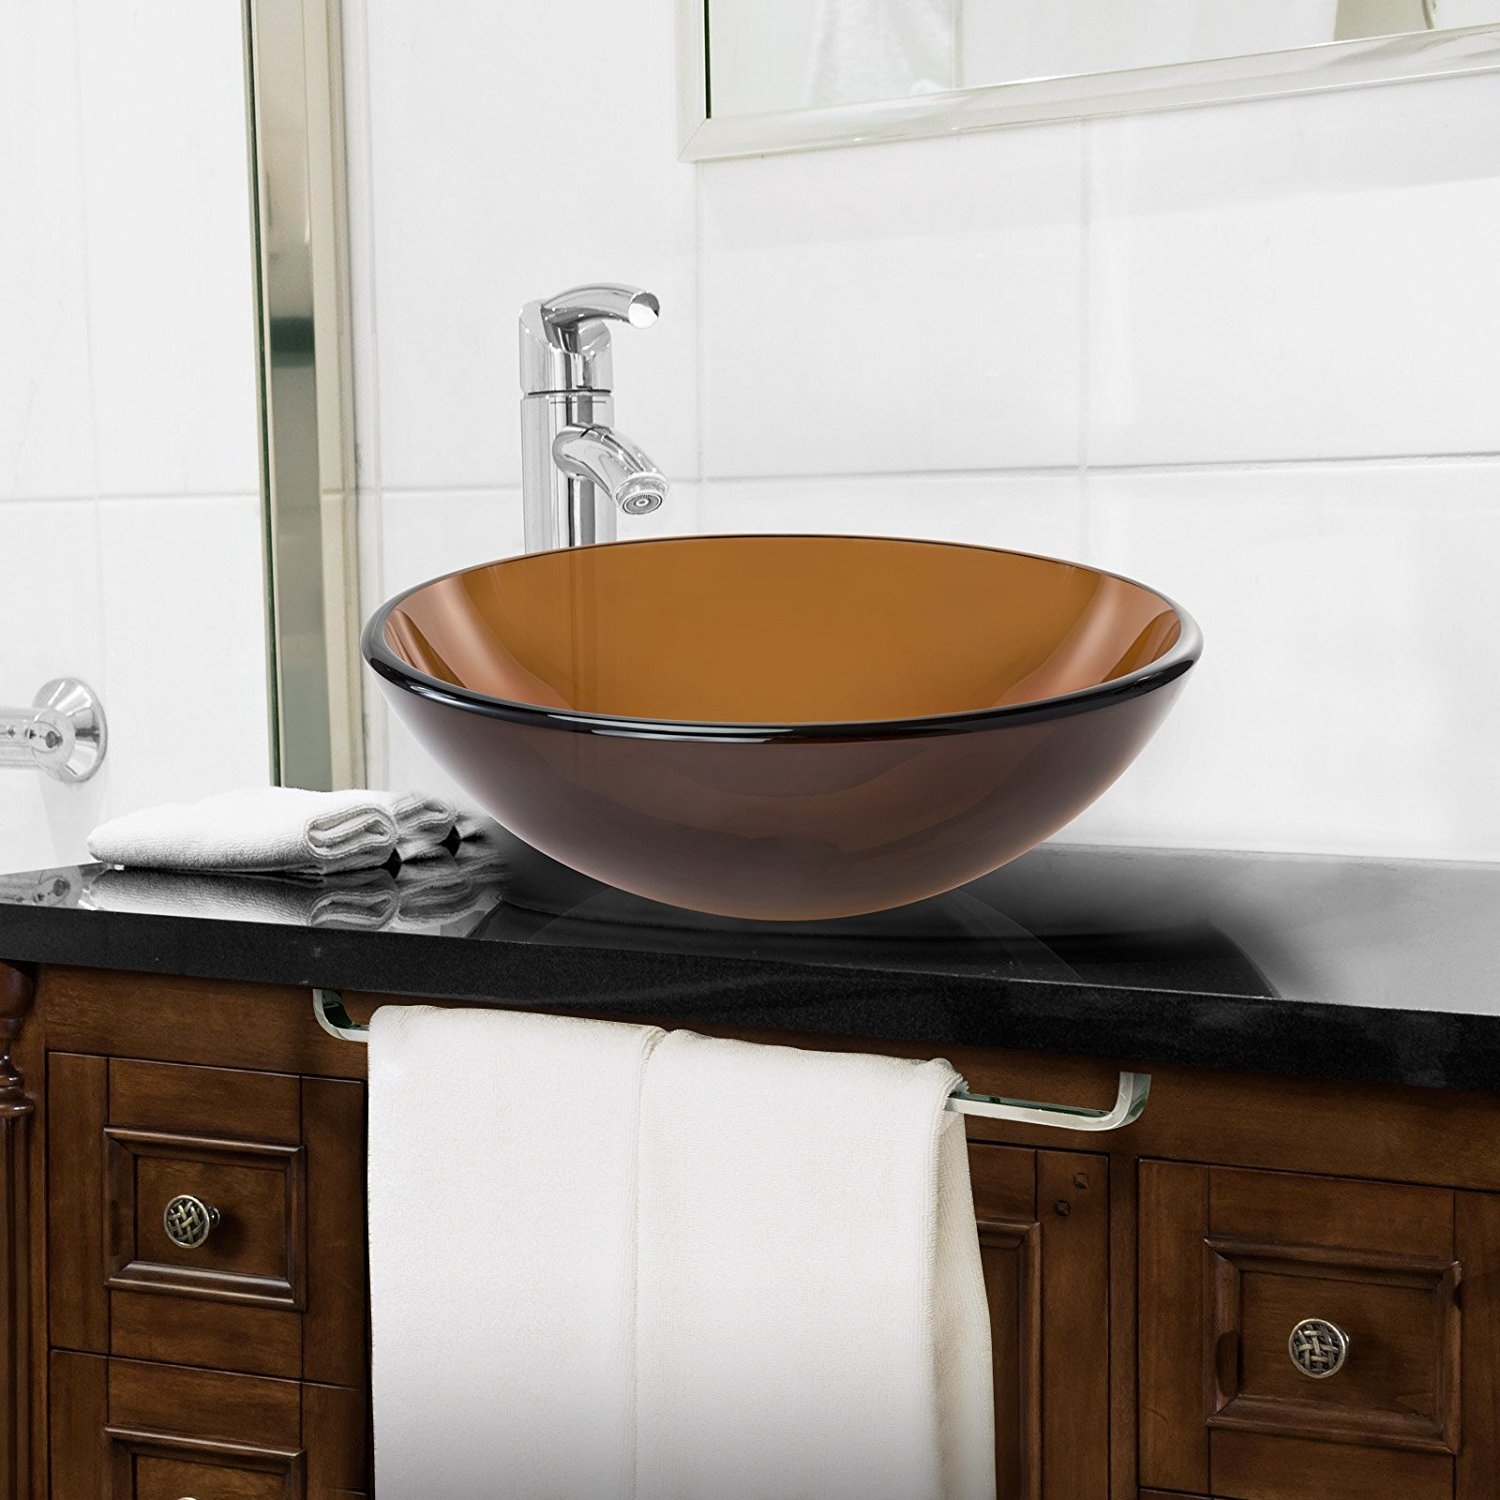 Miligore Tempered Glass Vessel Bathroom Sink